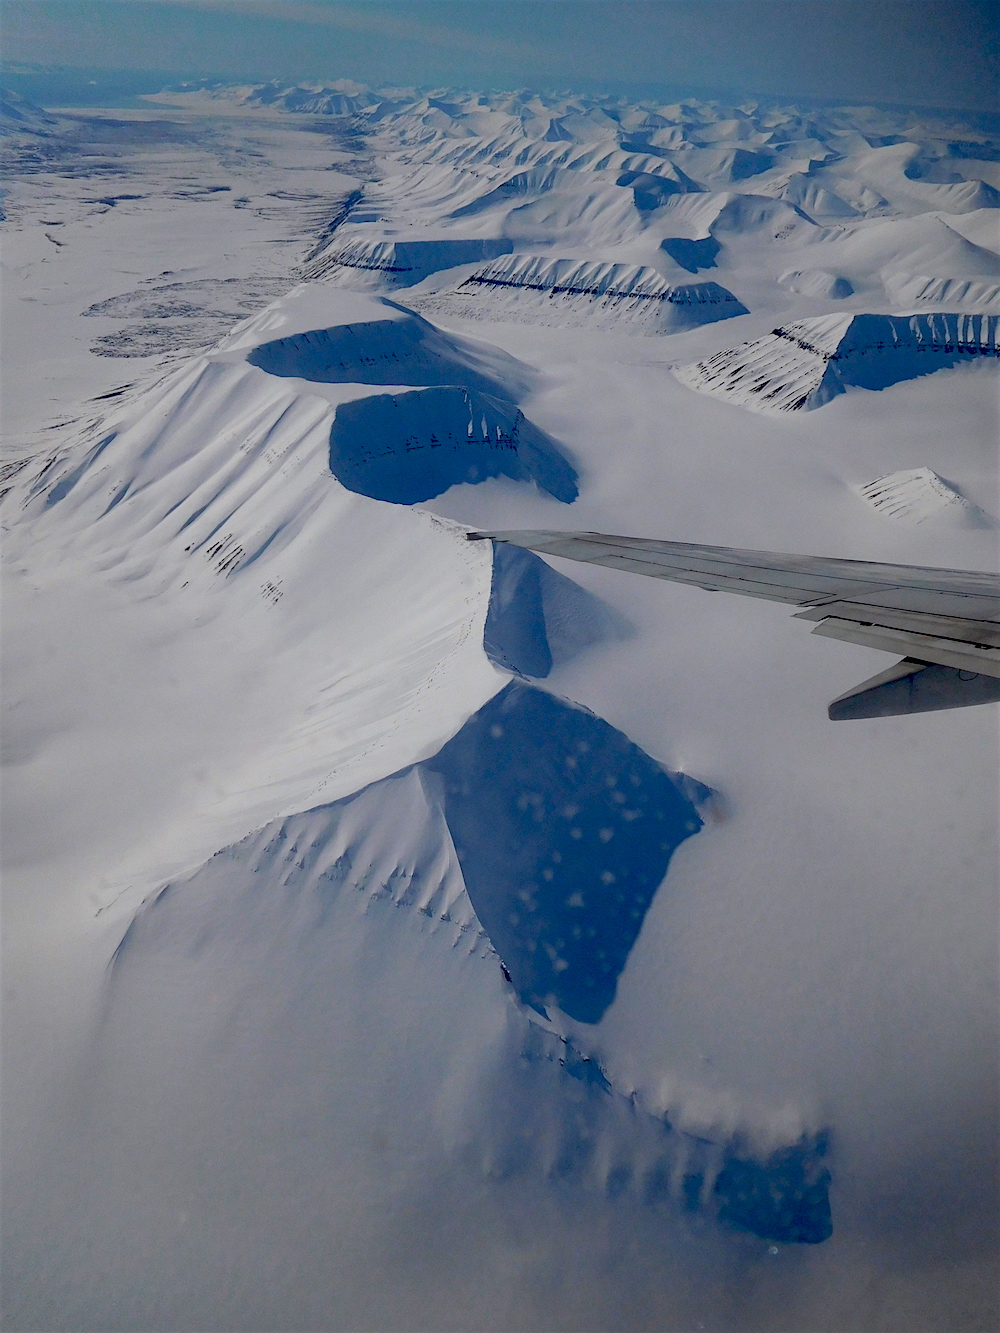 Svalbard from the air. photo: snowbrains